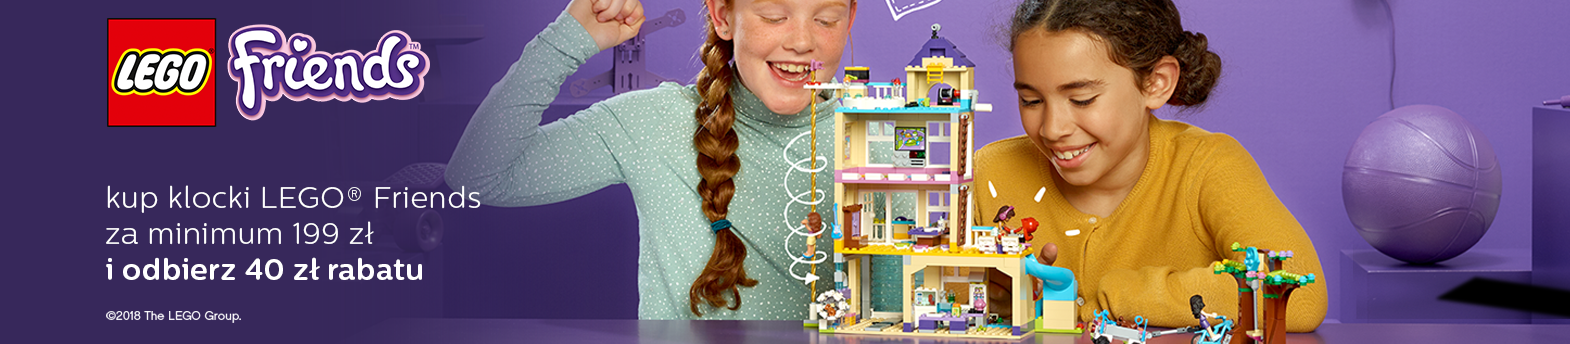 LEGO® Friends - 40 zł